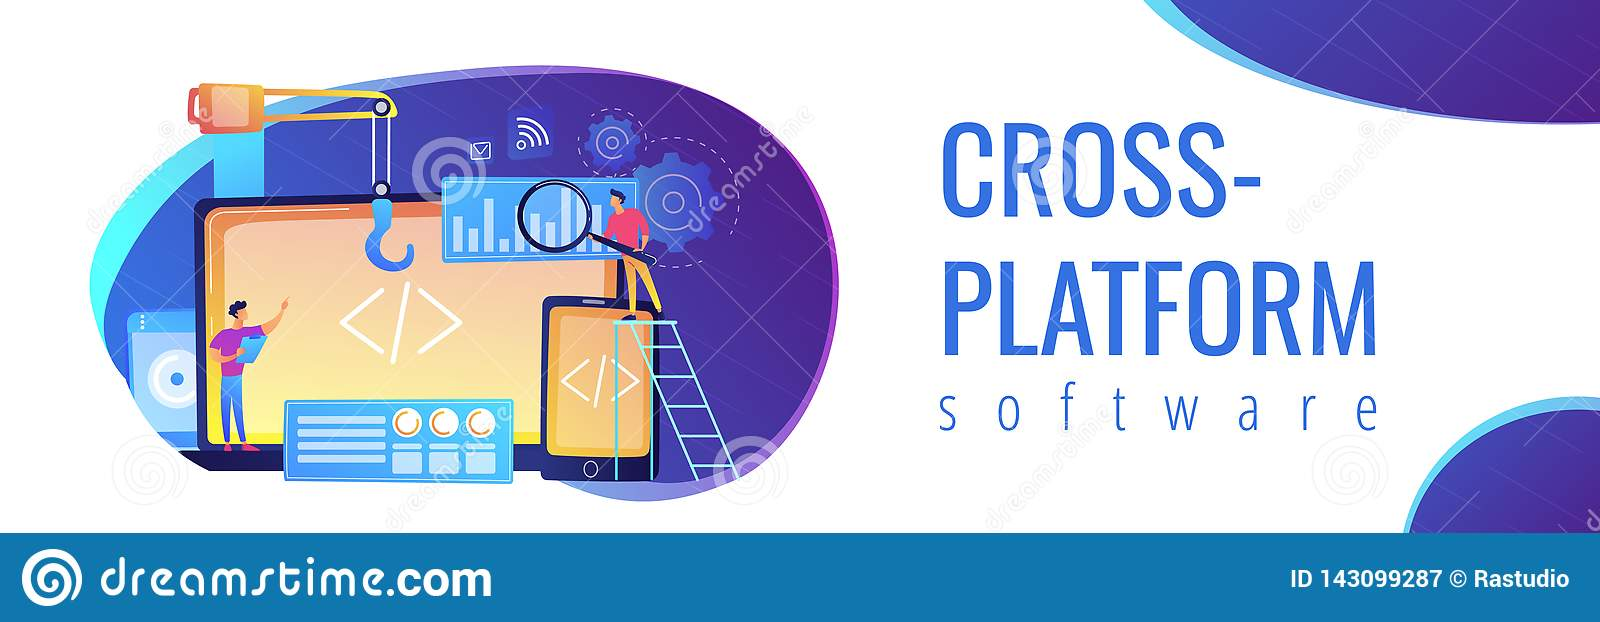 Cross-platform Development Concept Banner Header  Stock Vector